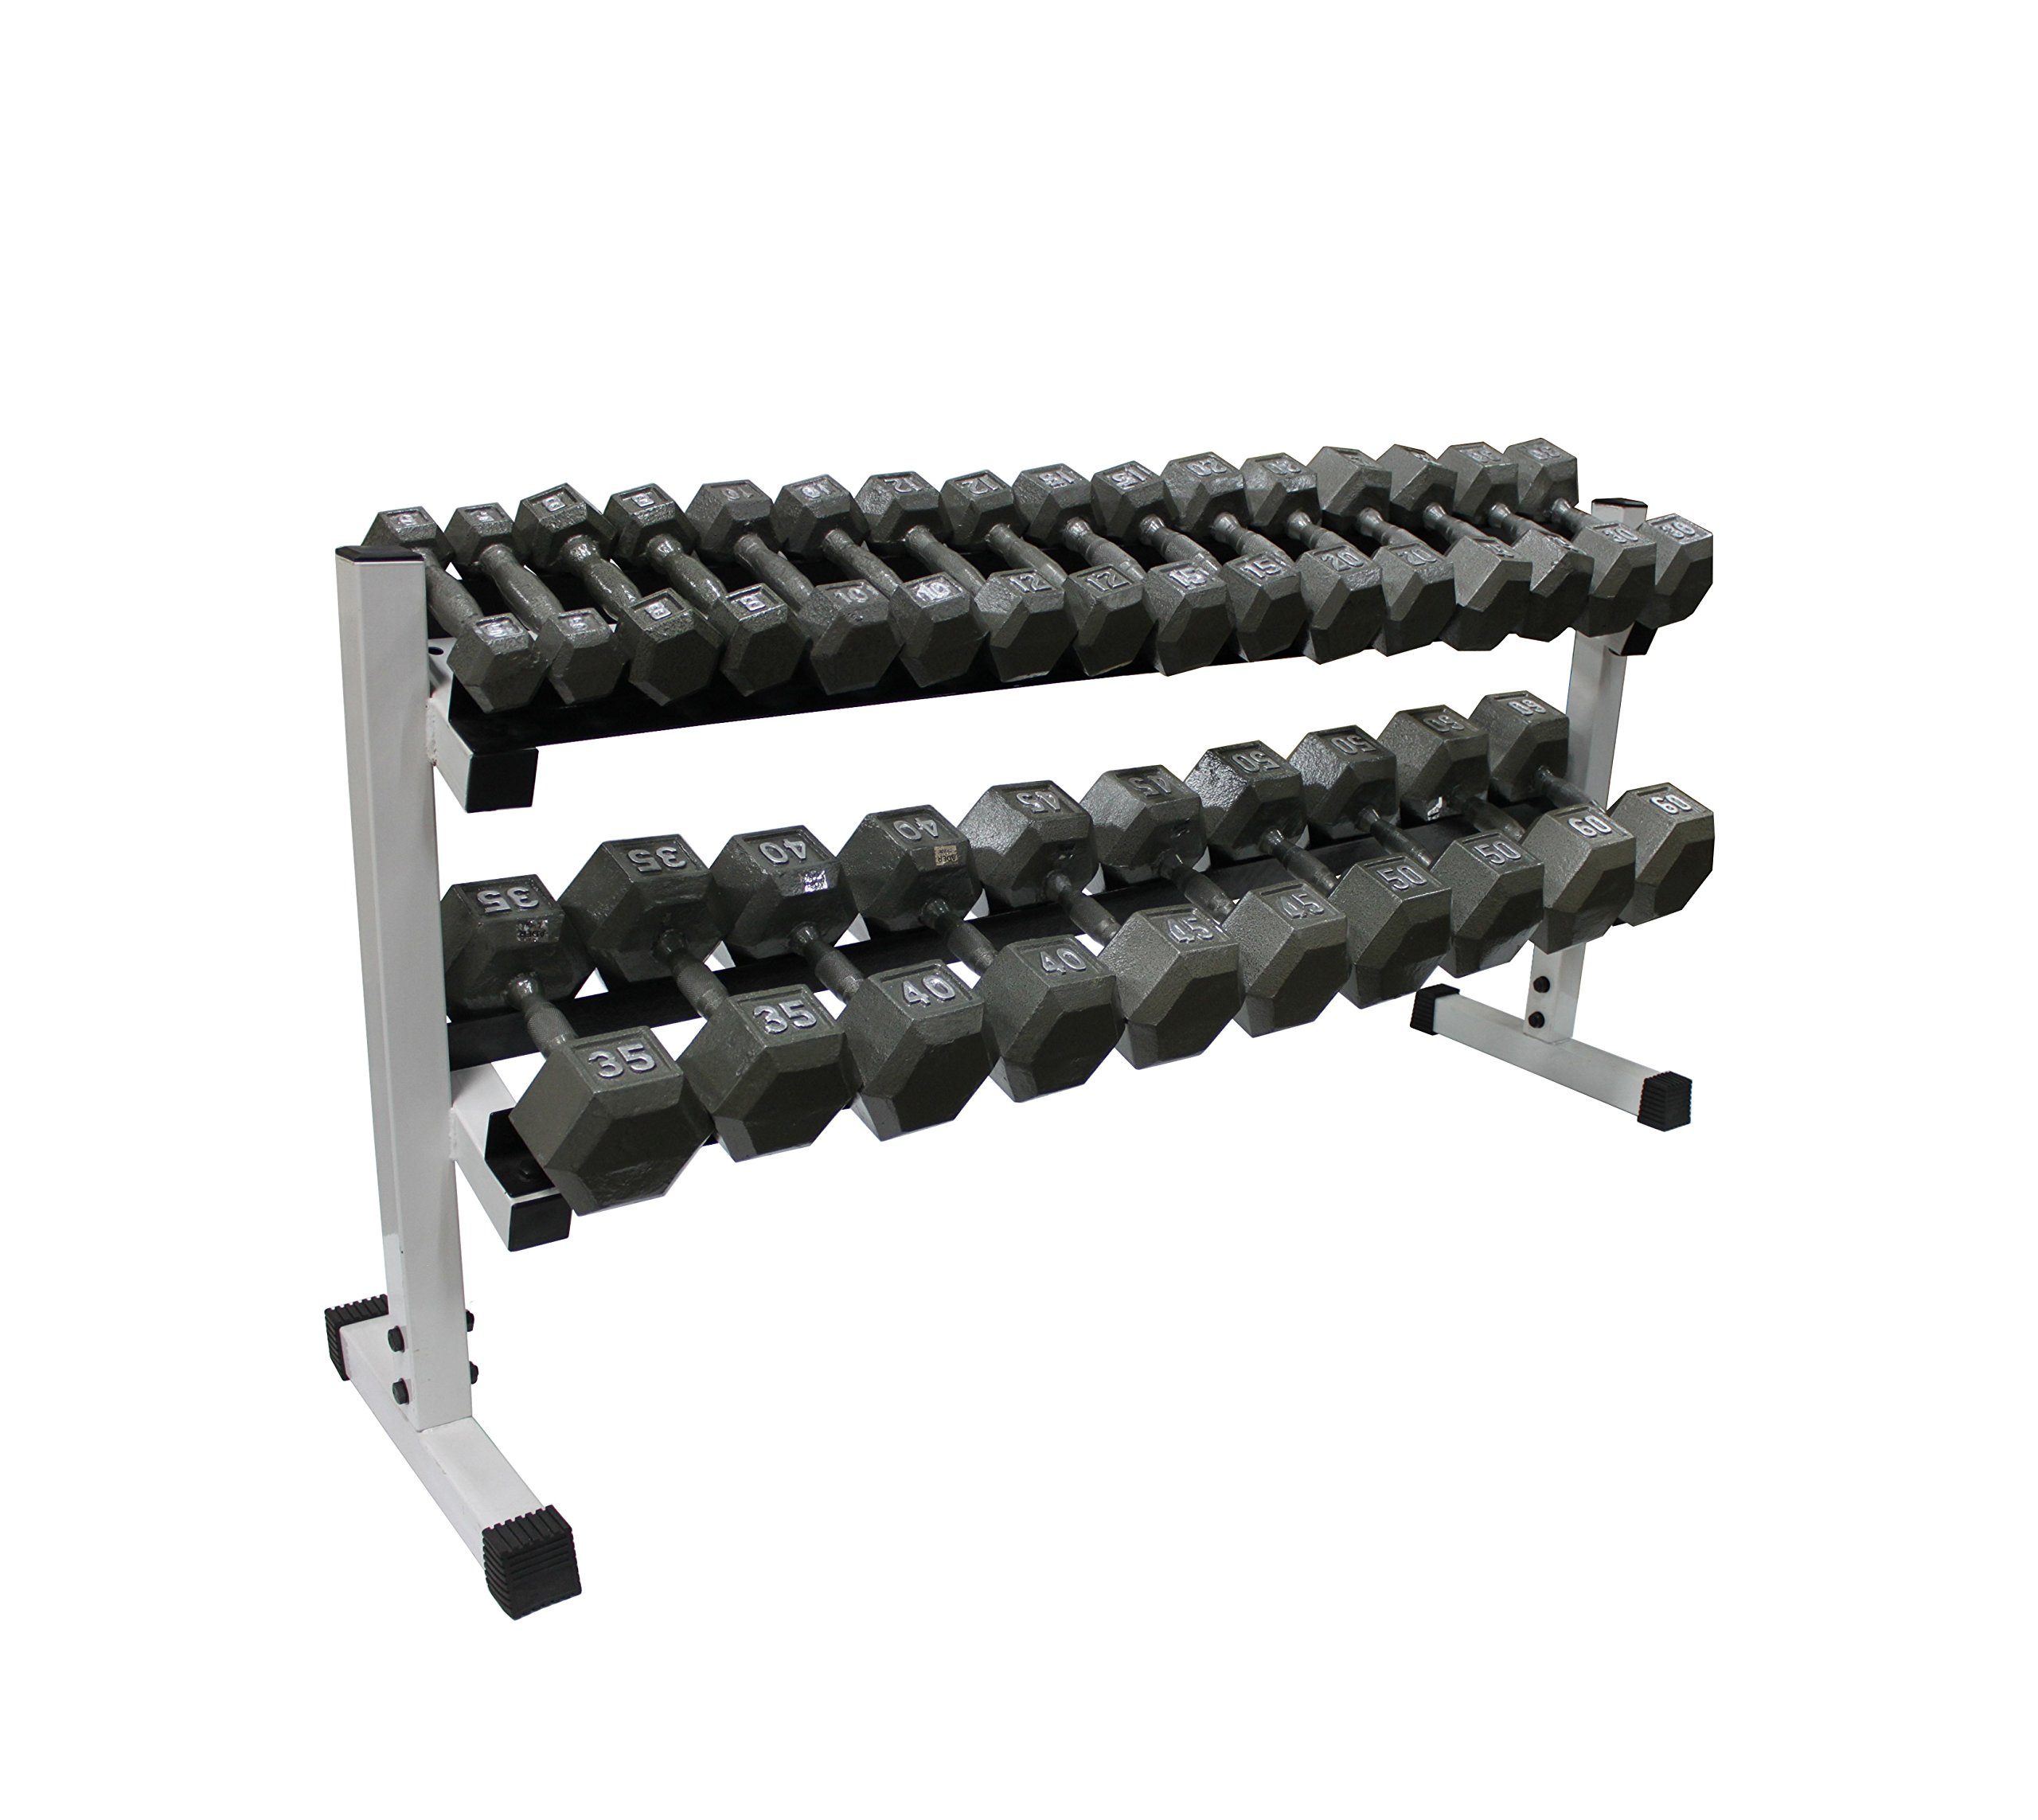 2-tier 60'' Dumbbell Rack w/ Hex Dumbbells